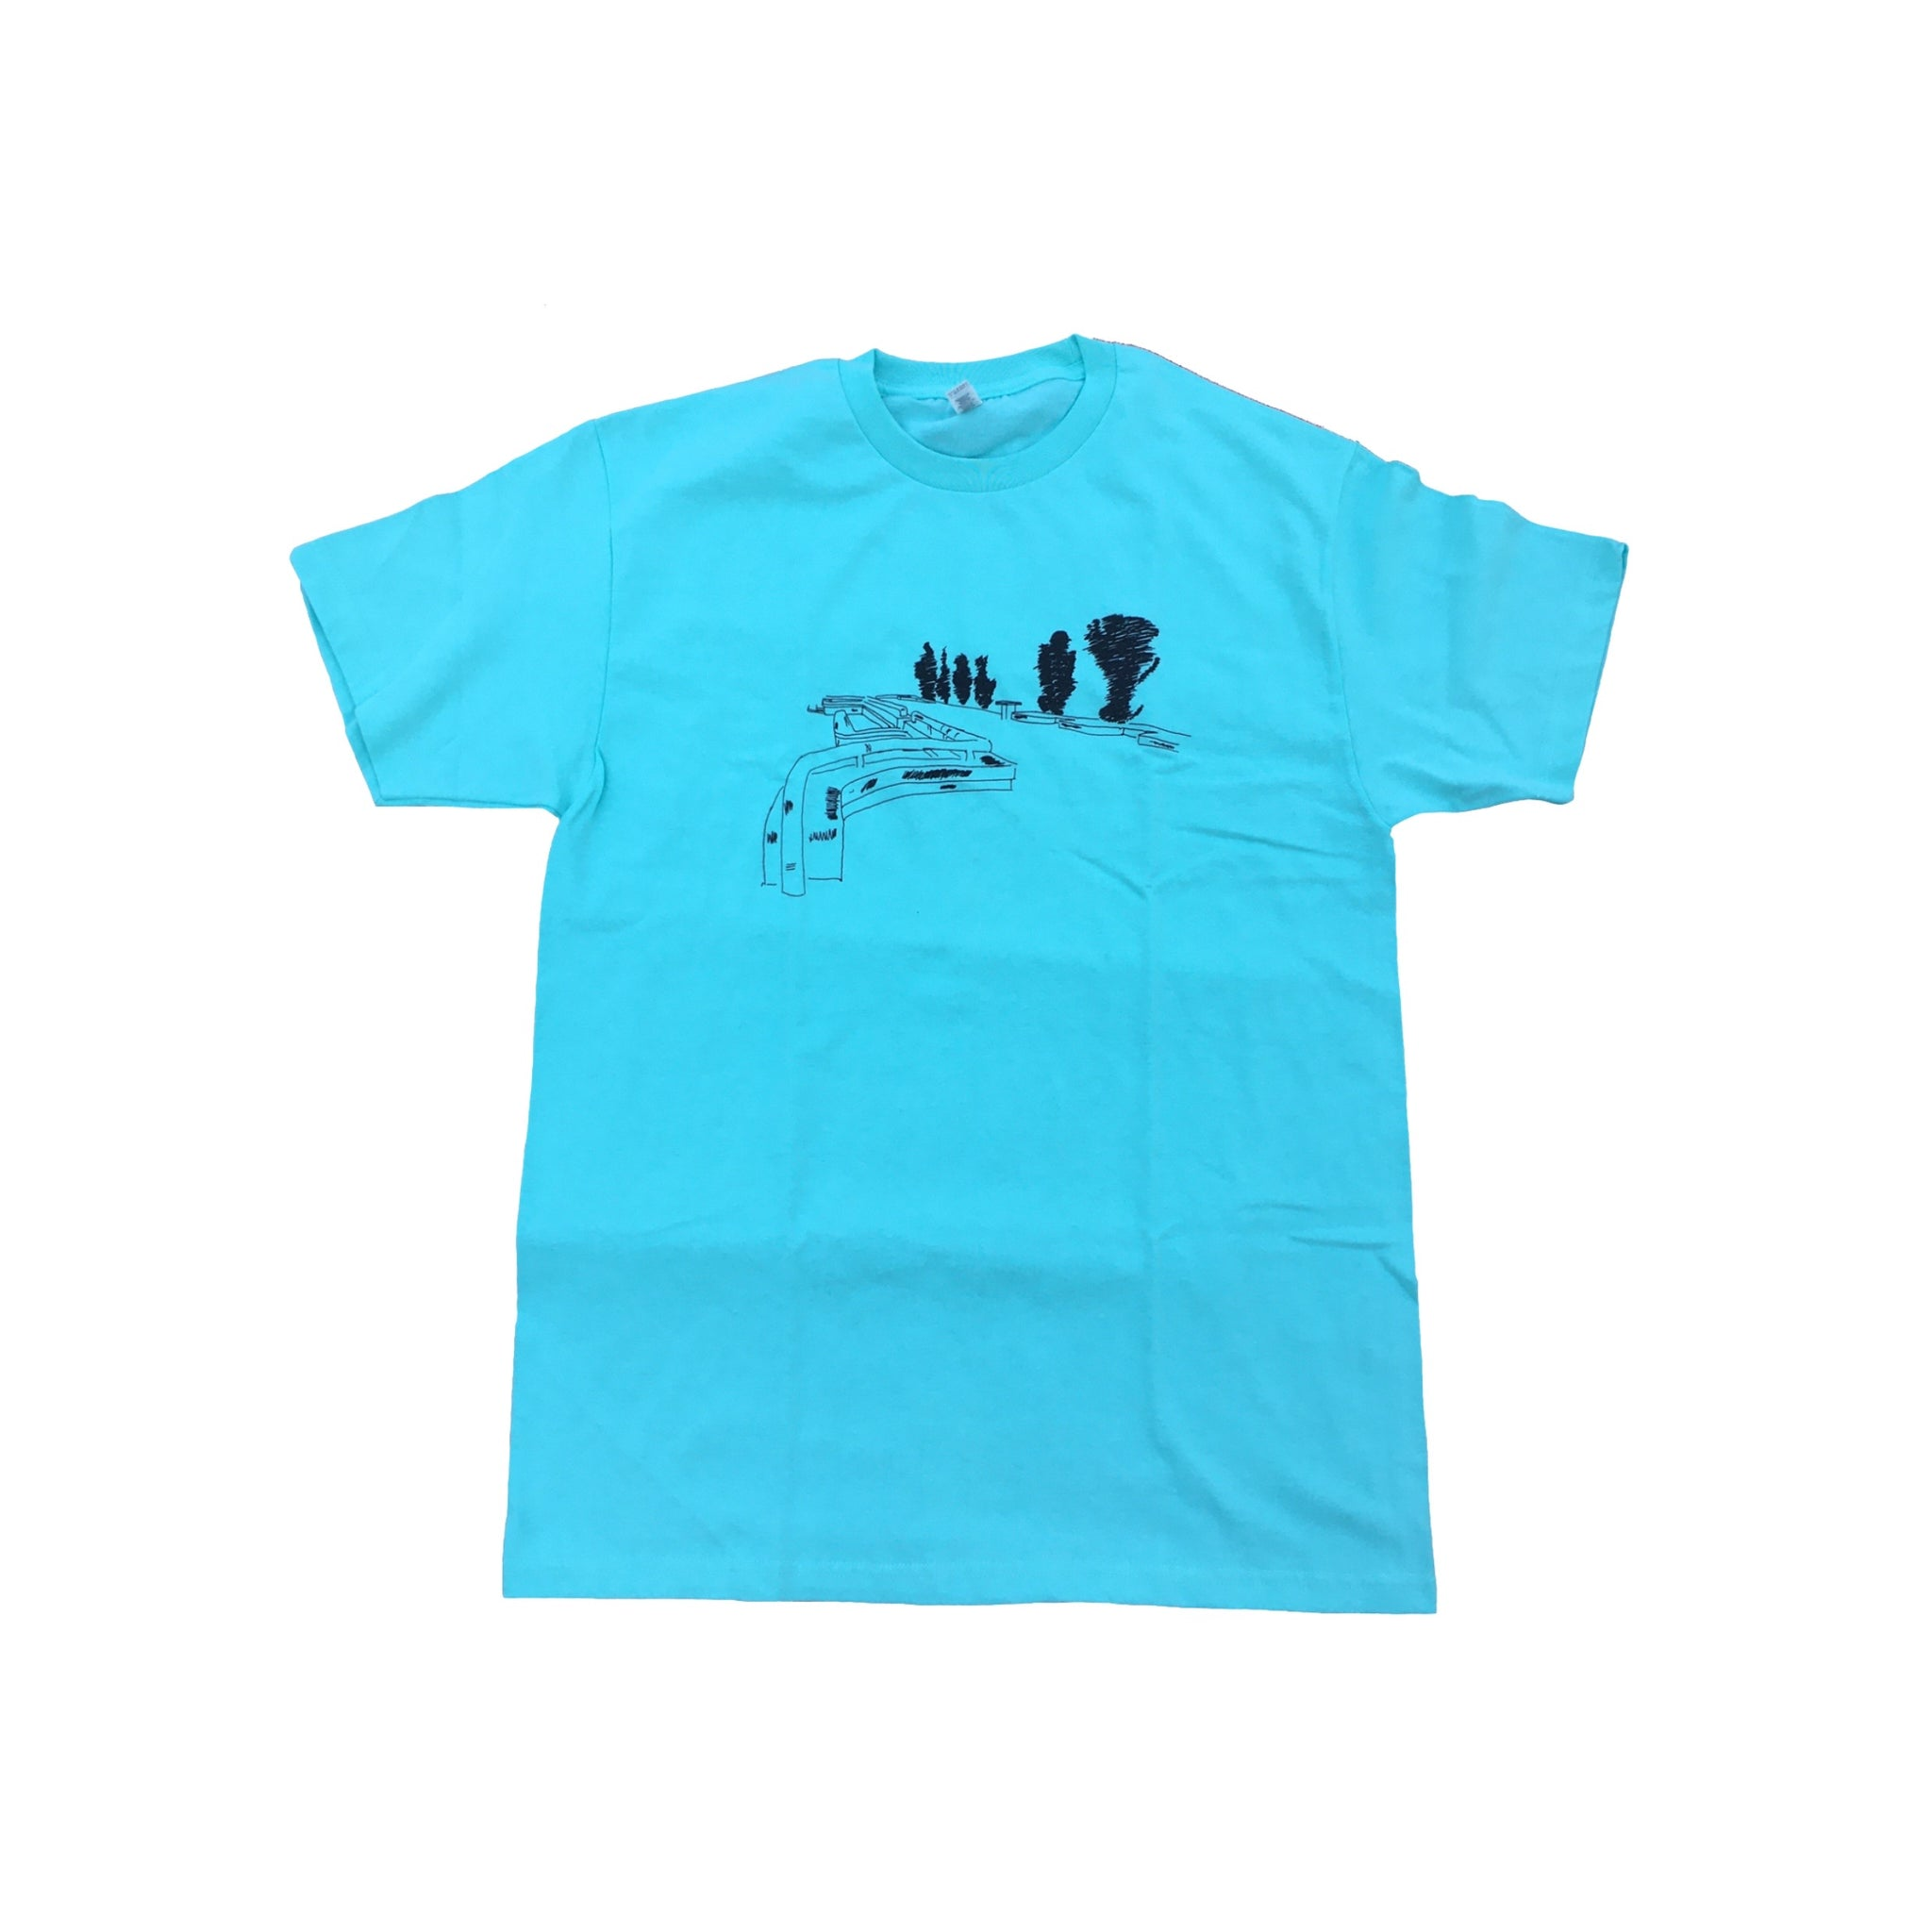 Baygame 3rd And Army Tee Teal